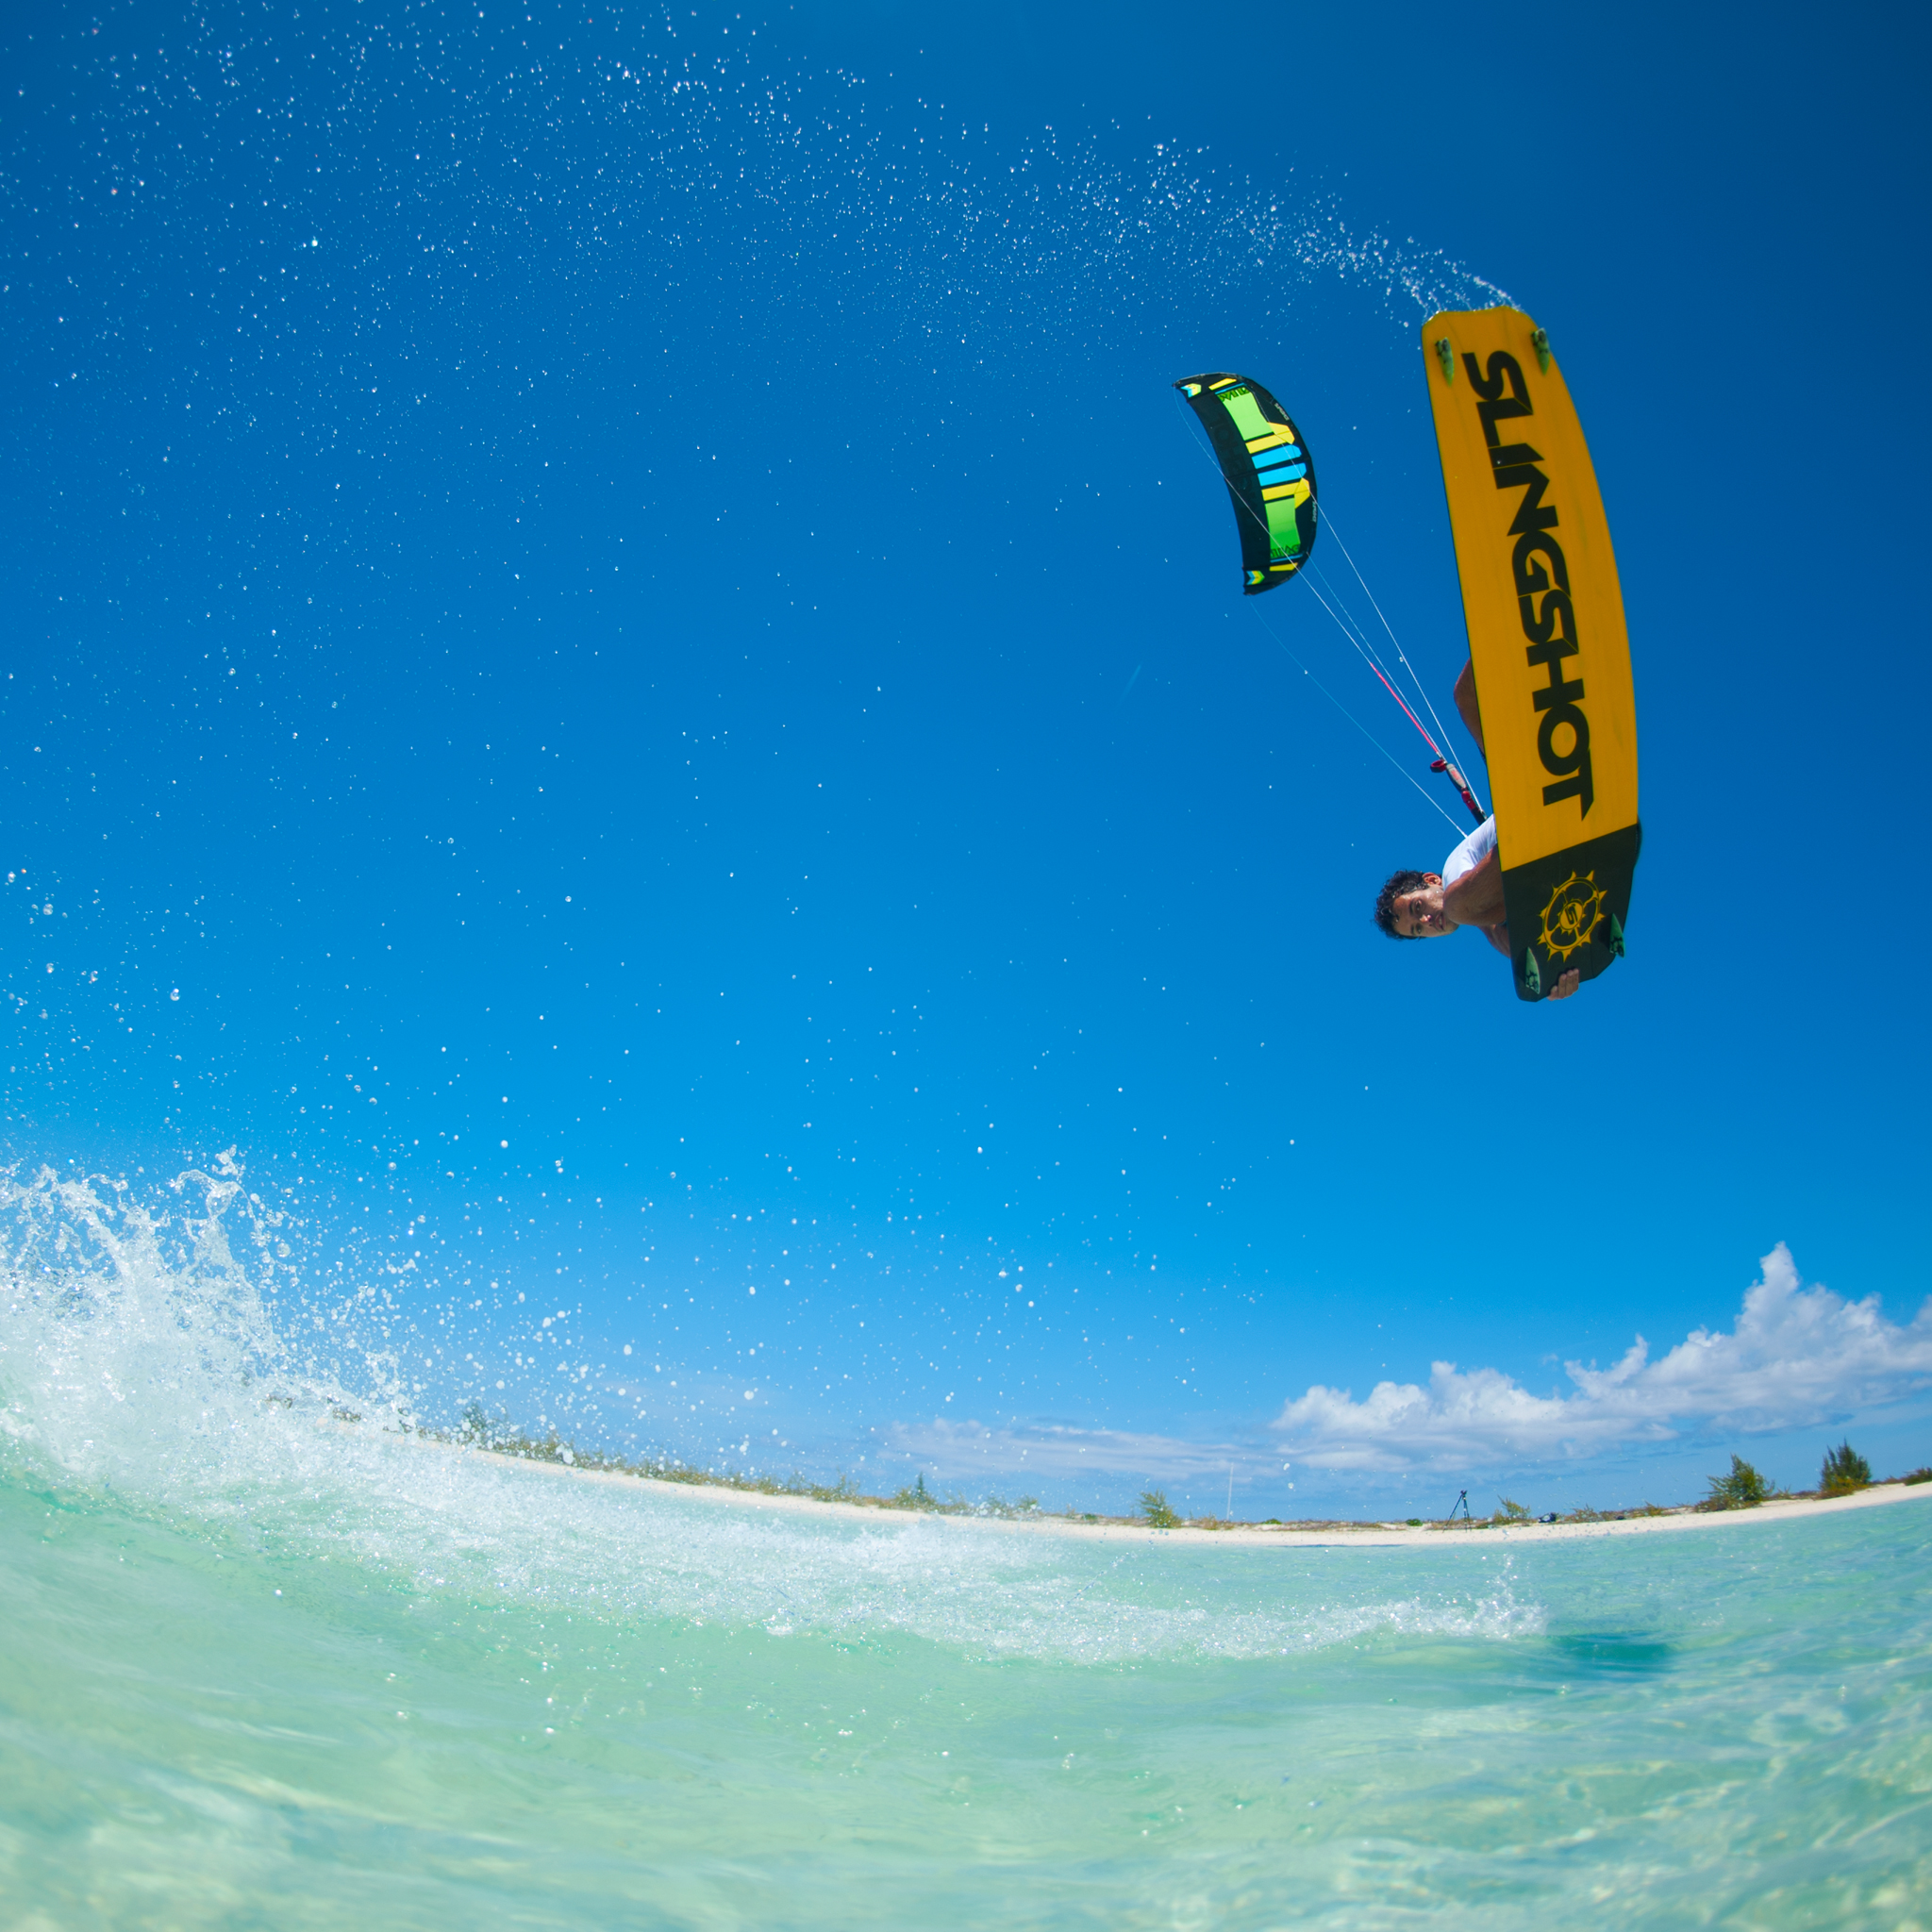 kitesurf wallpaper image - Kiteboarder Victor Hays with a jump and tail grab on the 2016 Slingshot Rally kite and Misfit kiteboard. - in resolution: iPad 2 & 3 2048 X 2048